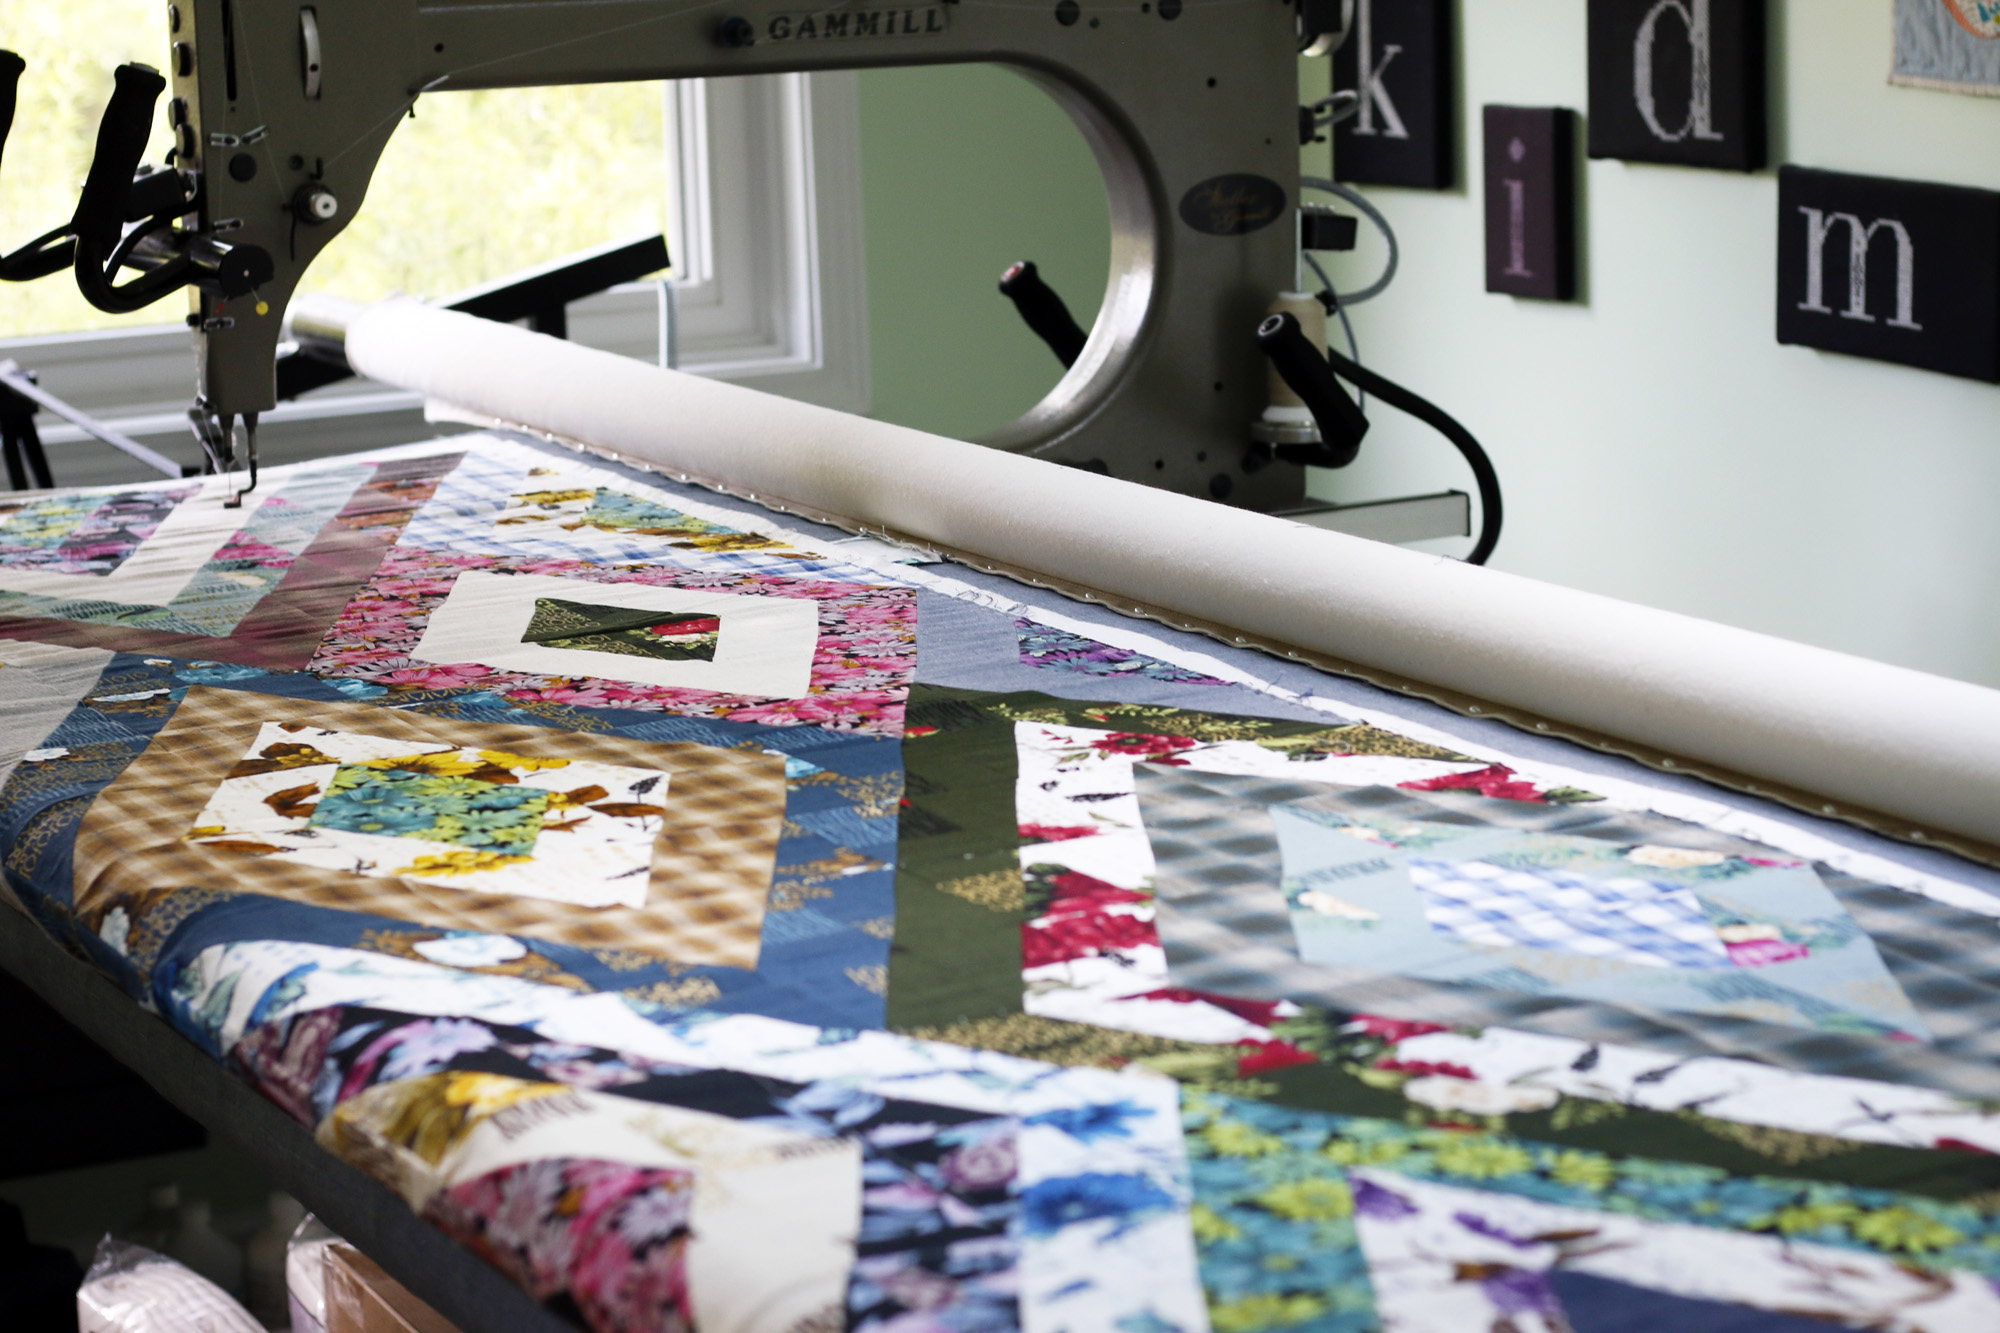 Diamonds outback on longarm. Stitched in Color.jpg